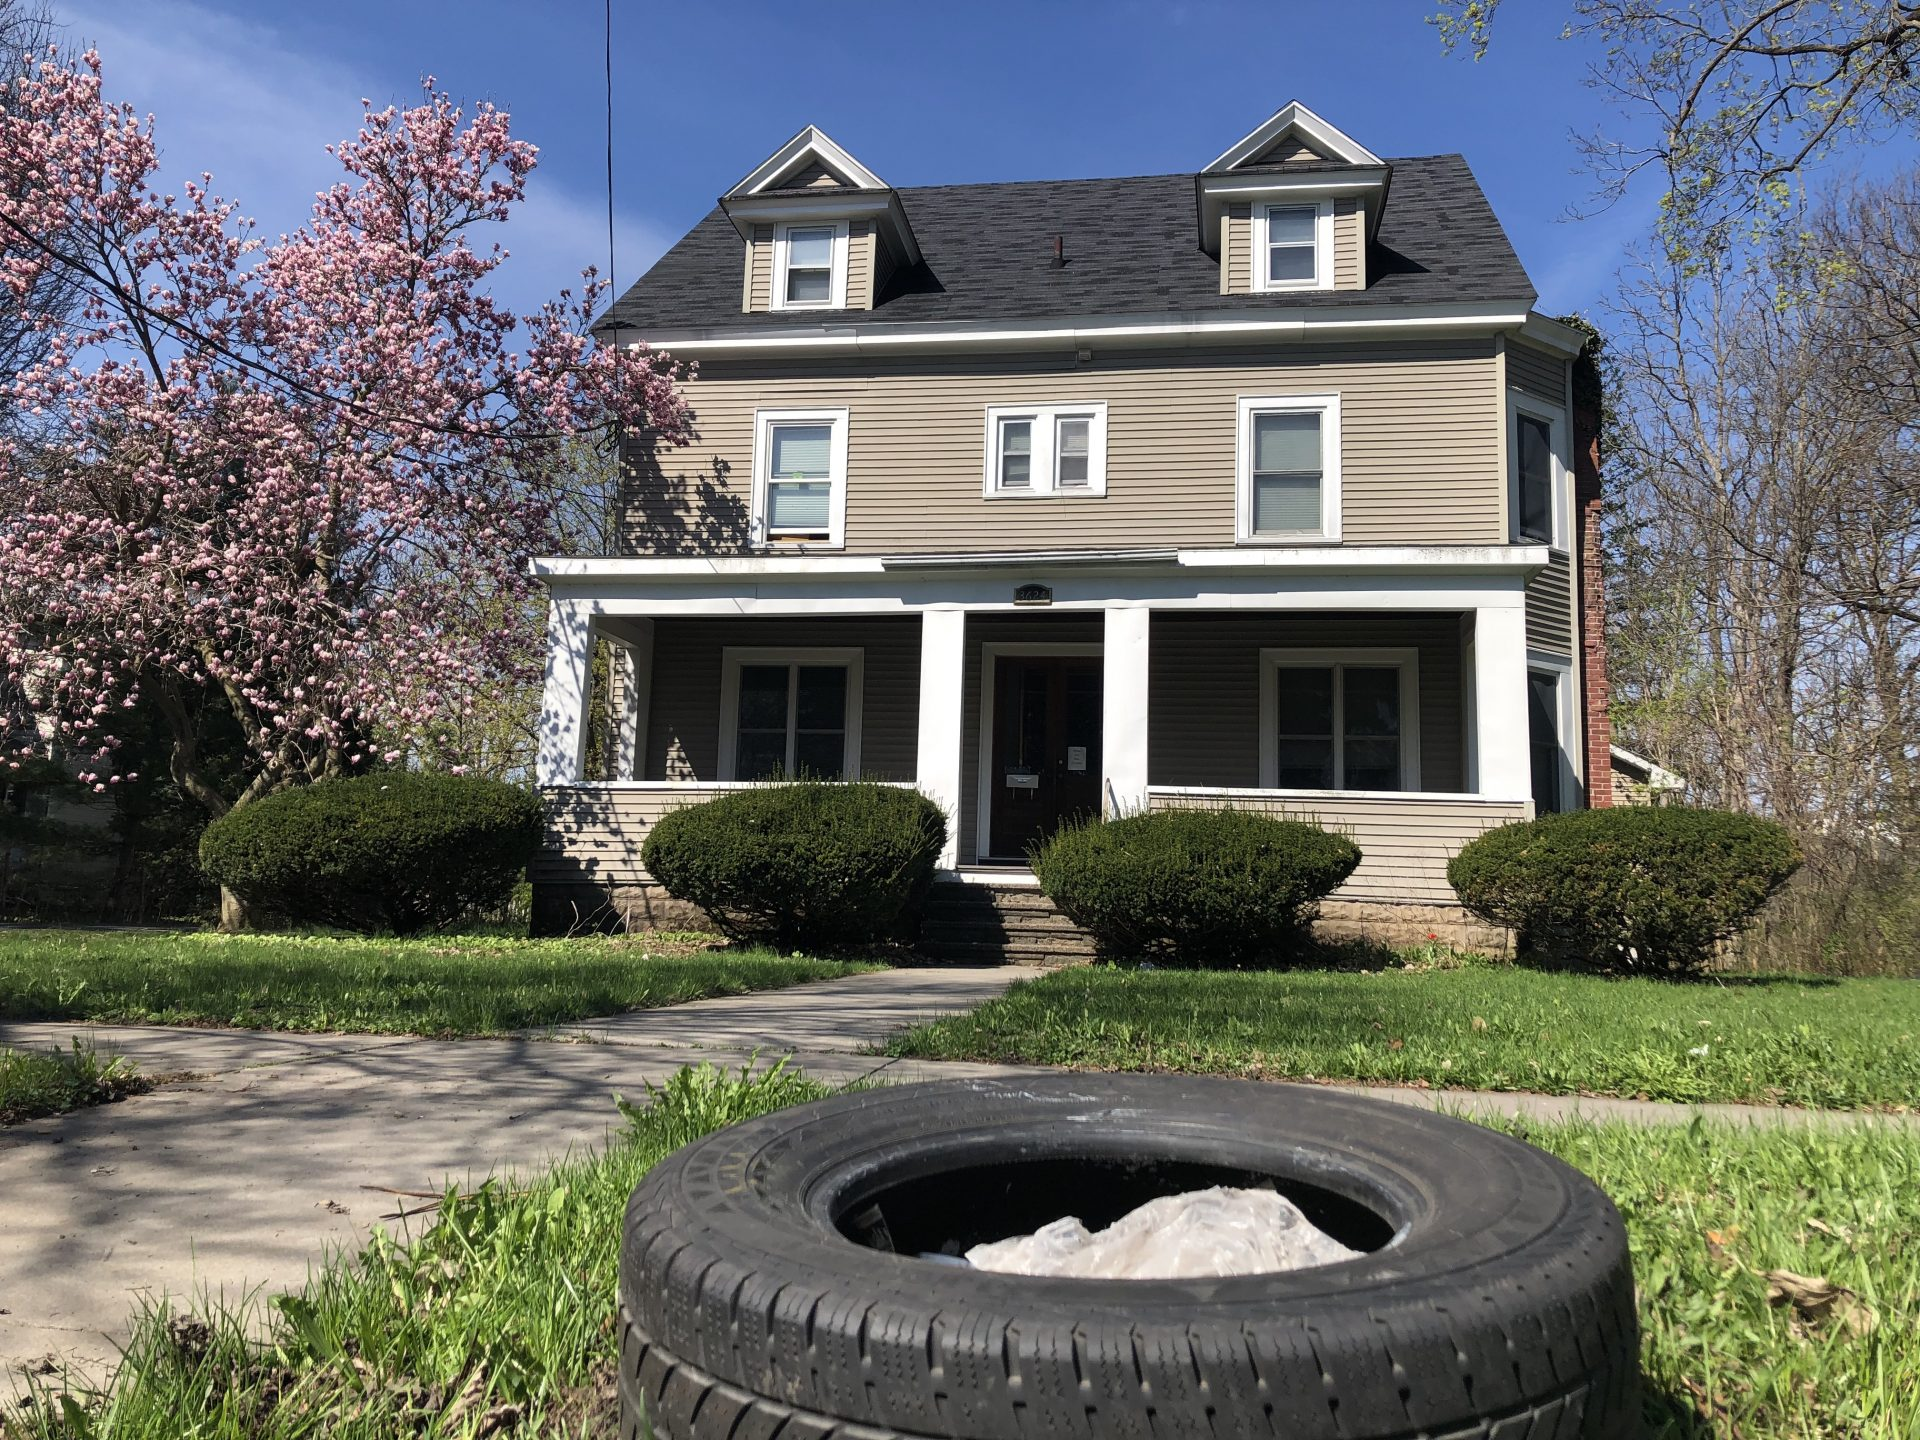 Street view of house with a tire outside on the sidewalk.